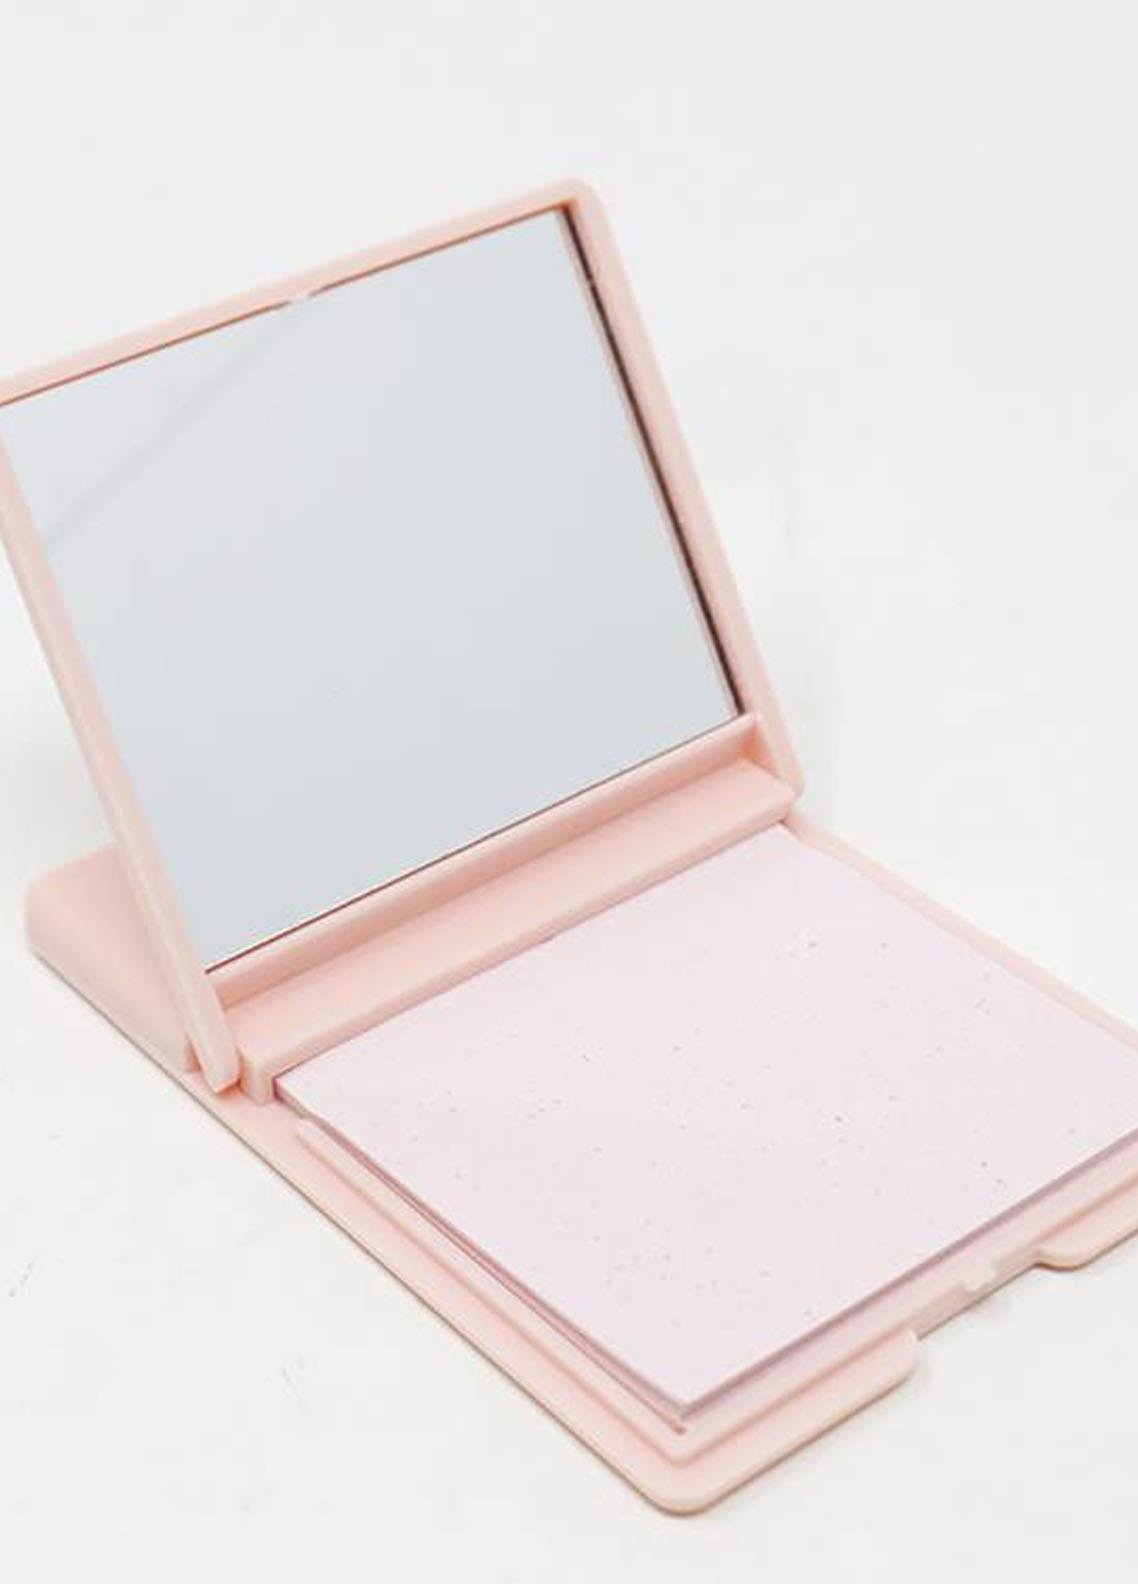 Mumuso Blotting Papers with Mirror - Pink